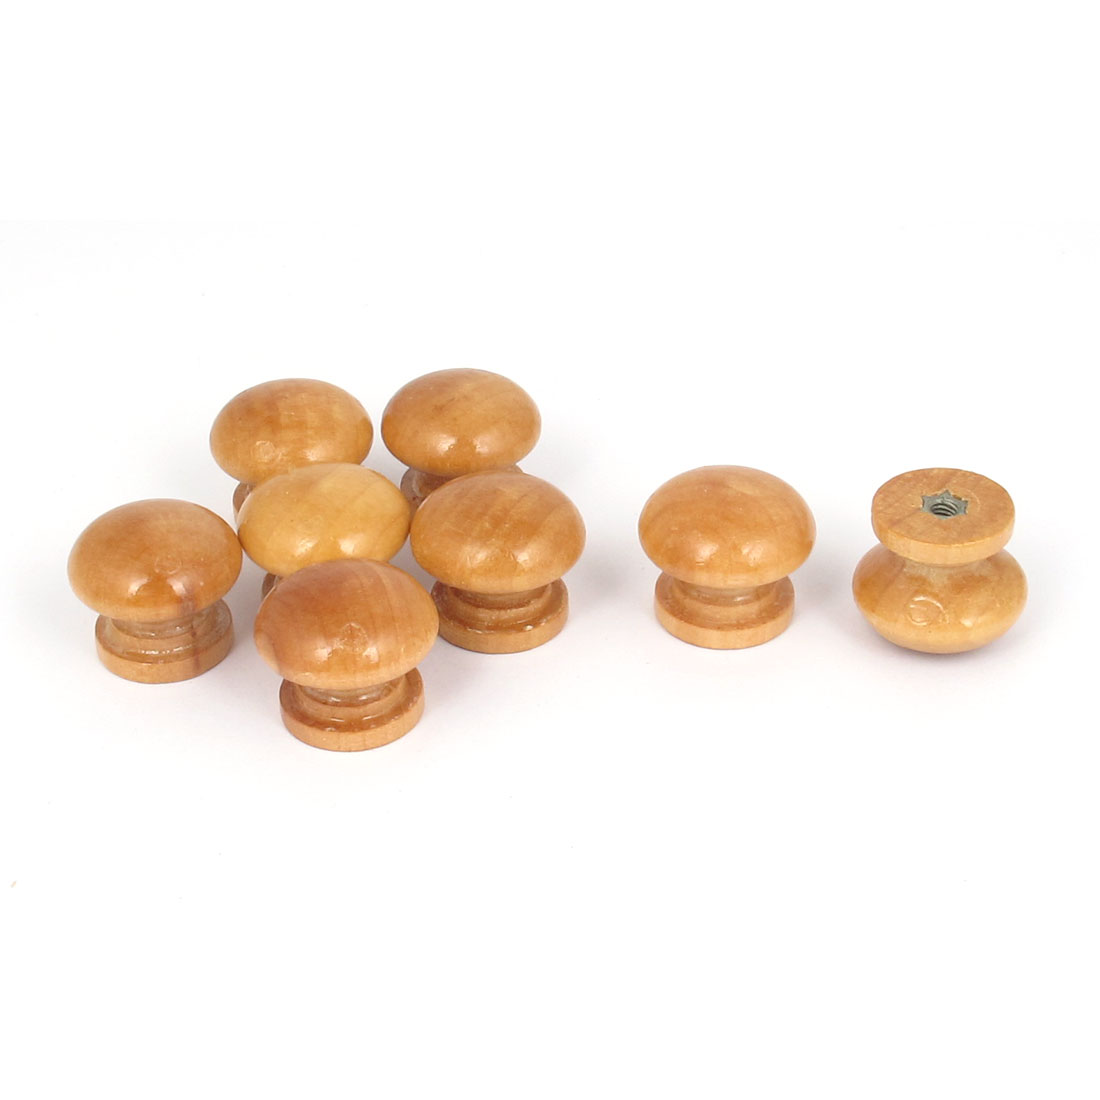 Wooden Round Shaped Home Cabinet Cupboard Drawer Pull Knob Handle Beige 8Pcs